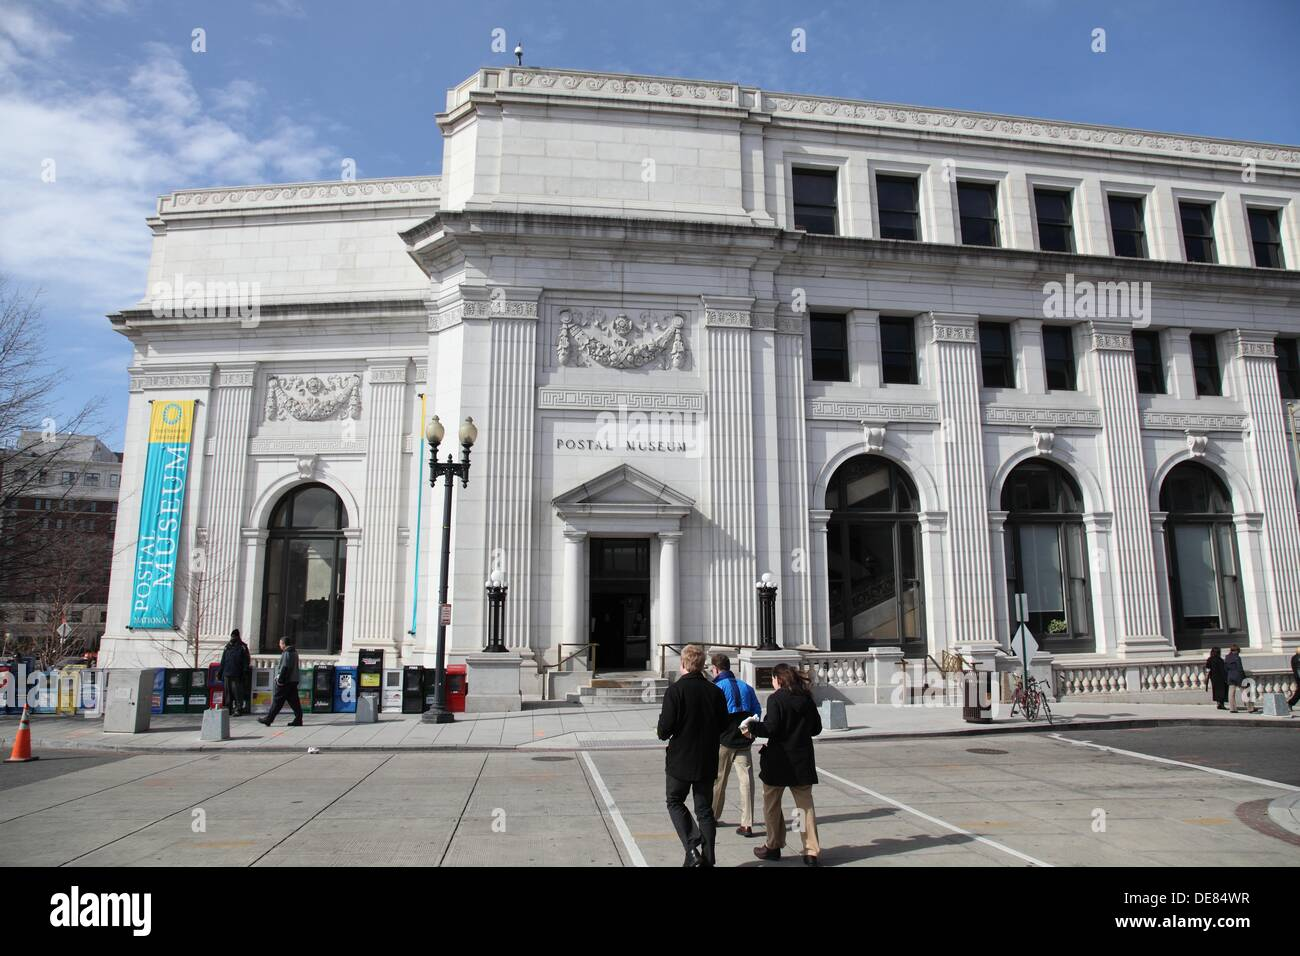 Postal Museum in Washington DC, USA - Stock Image